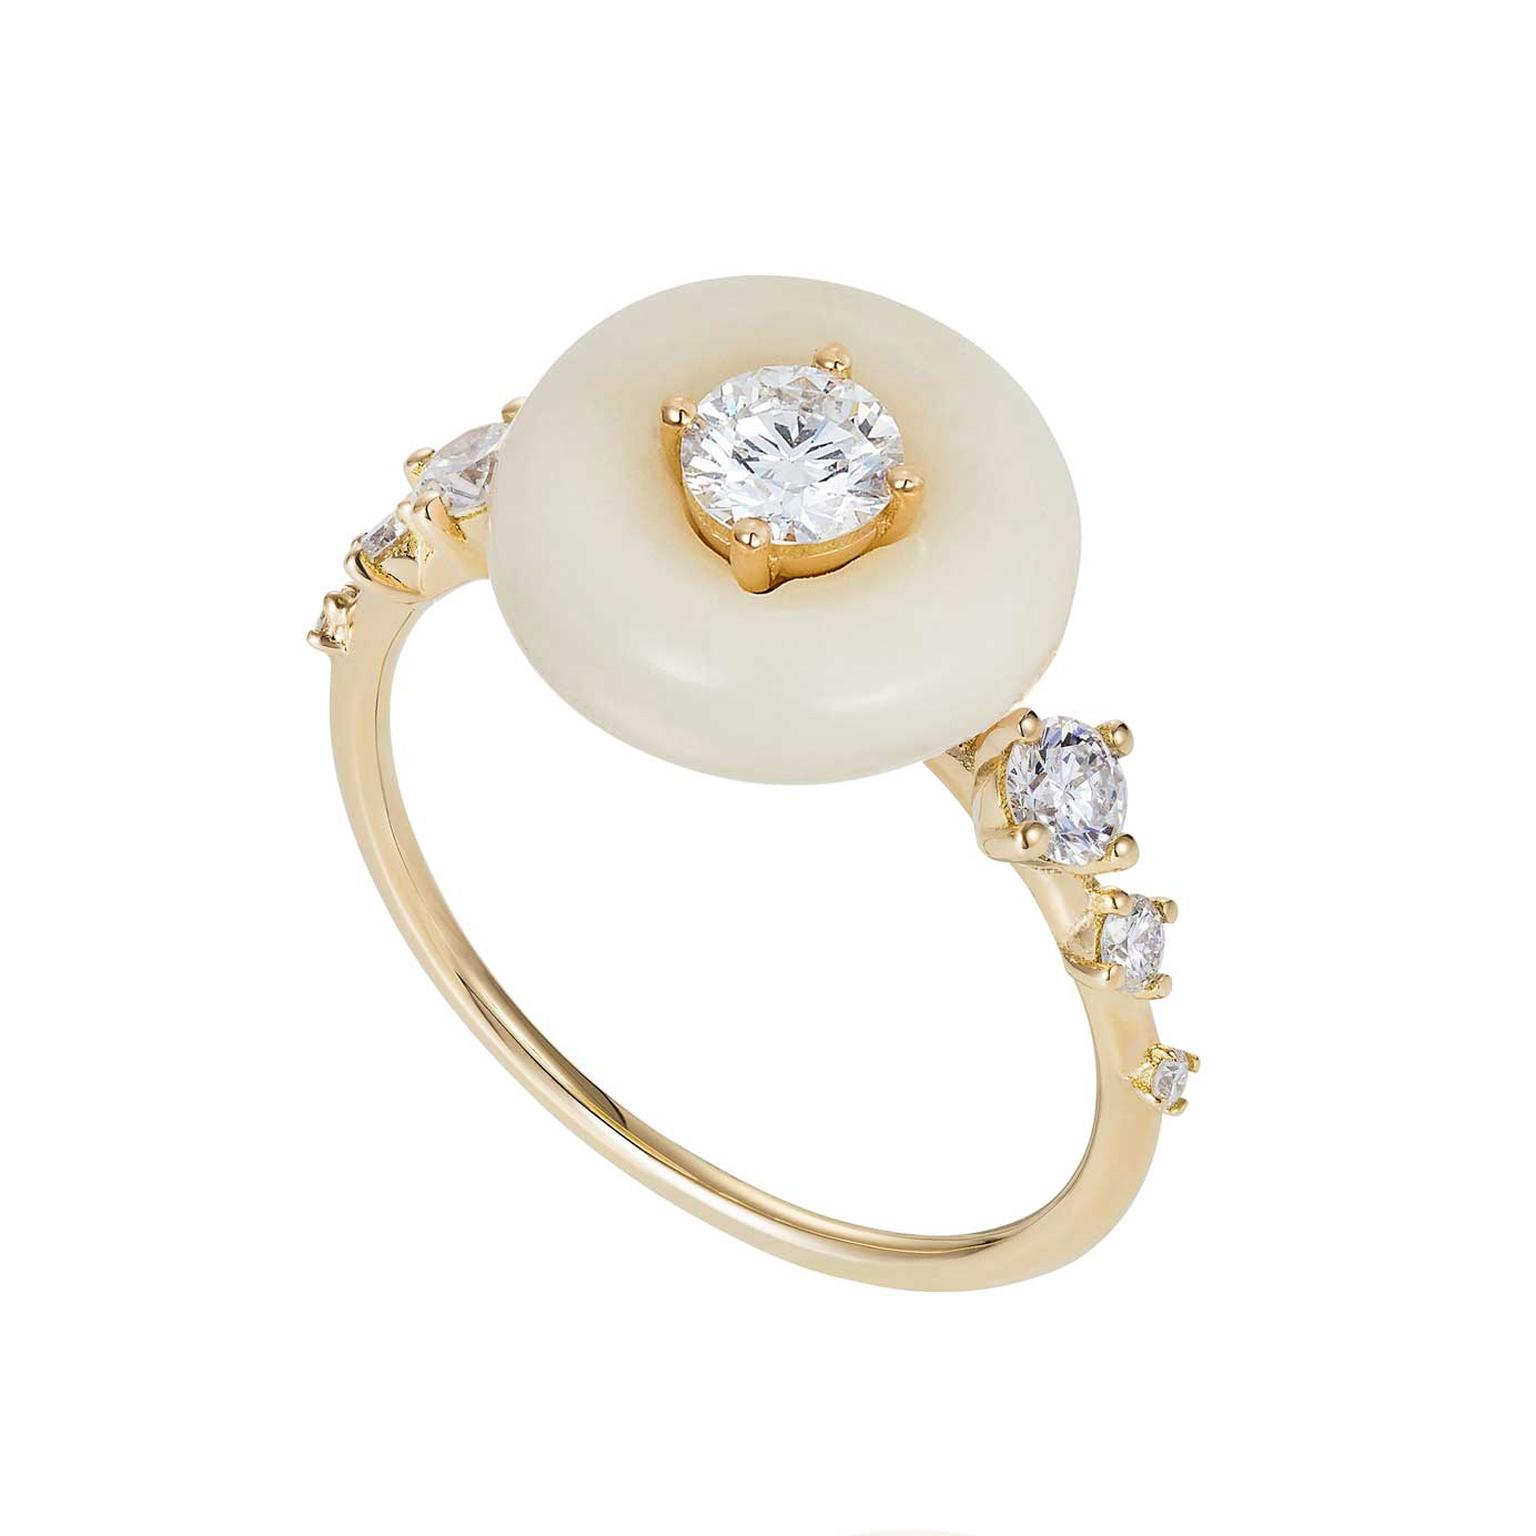 Fernando Jorge's Surround Orbit ring places a 0.52-carat diamond inside a plump circle of tagua nut on a dainty yellow gold band.